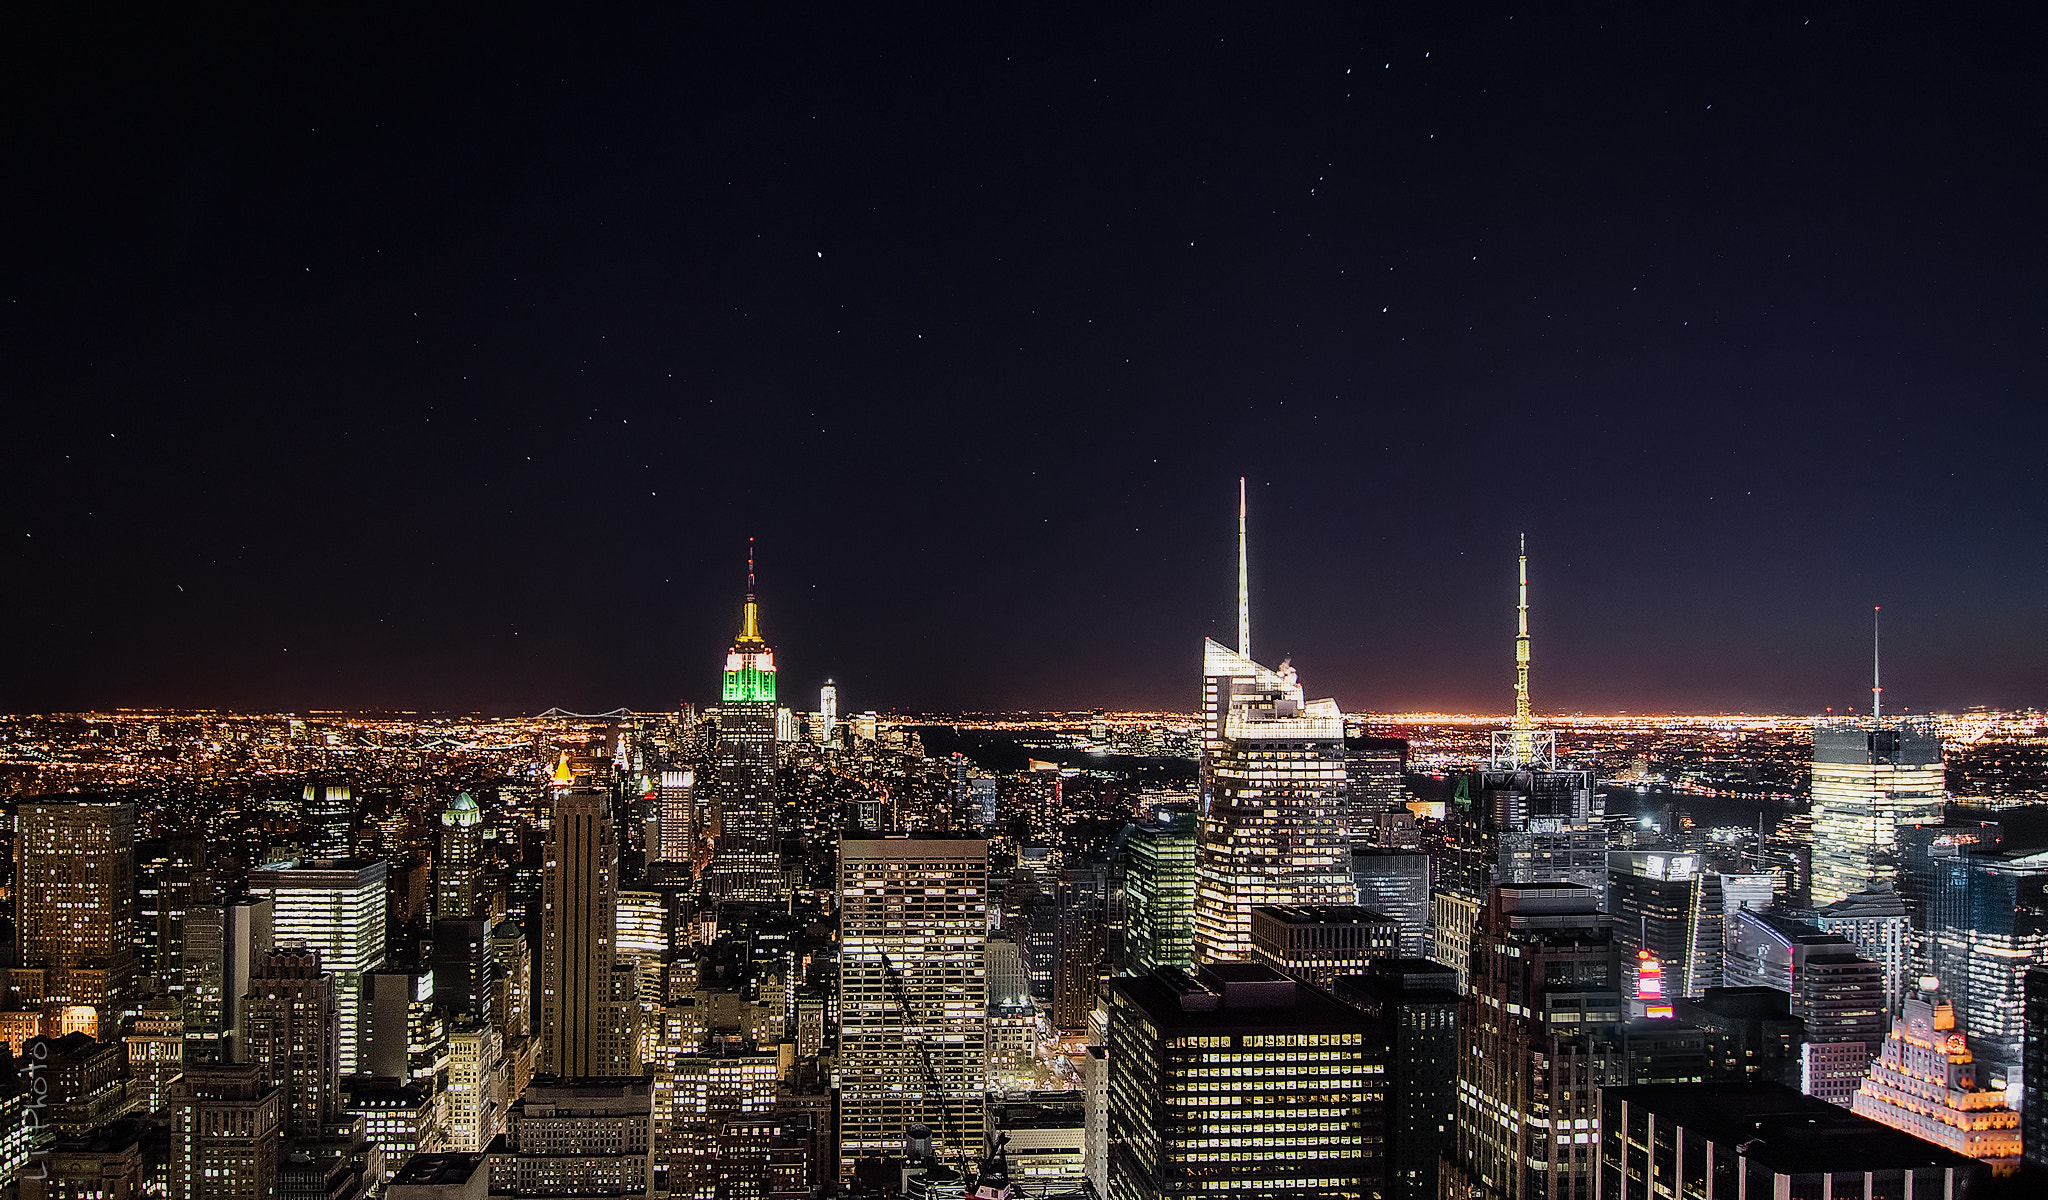 Photograph Stars over Manhattan by Javier de la Torre on 500px